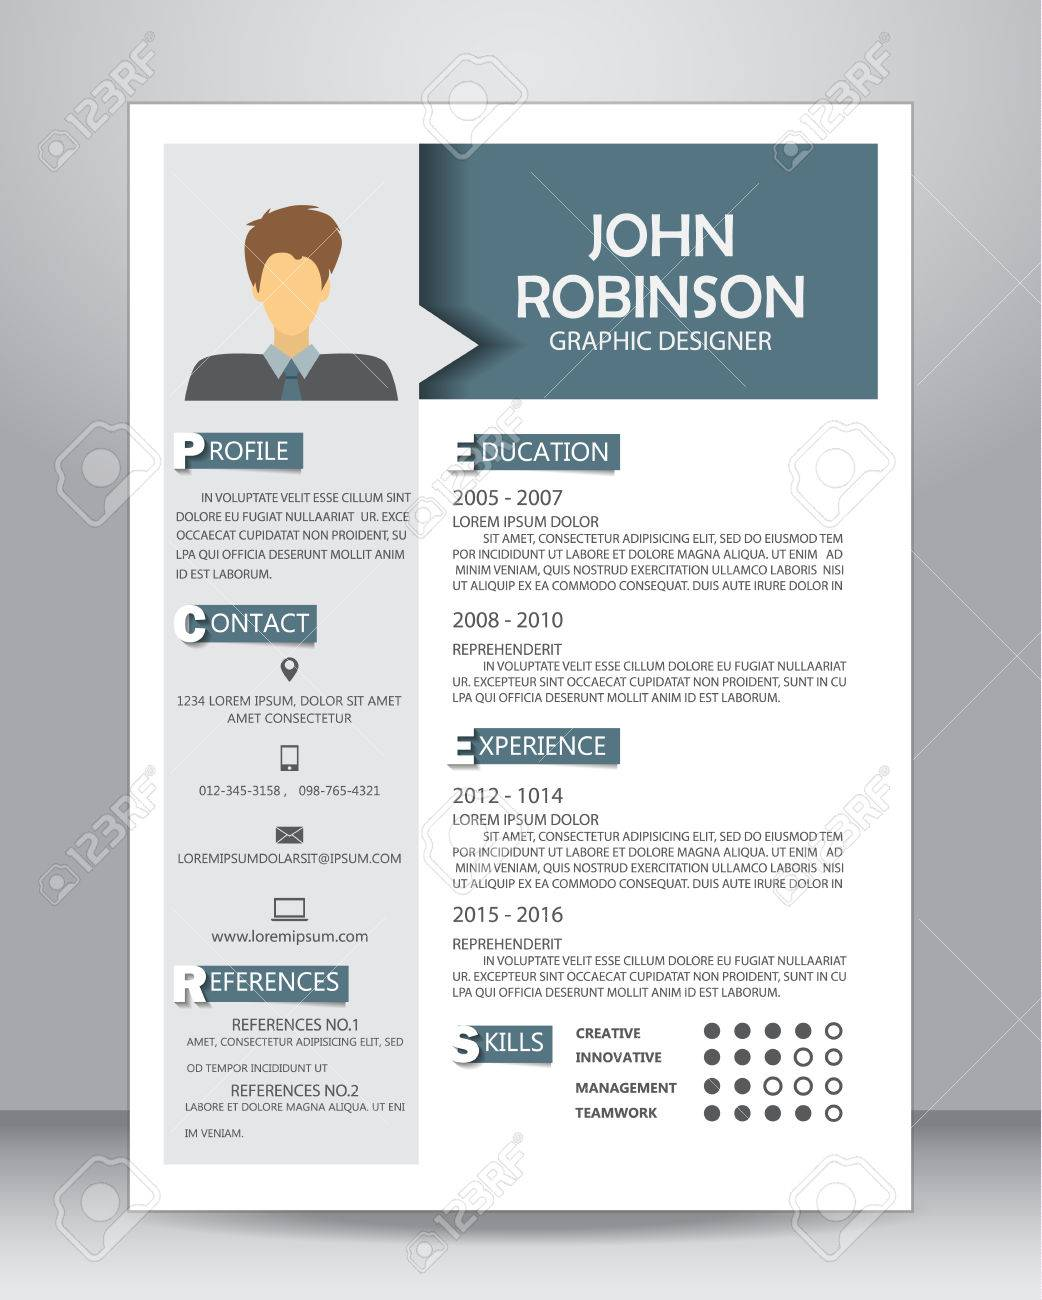 job resume or cv layout template in a4 size vector illustration